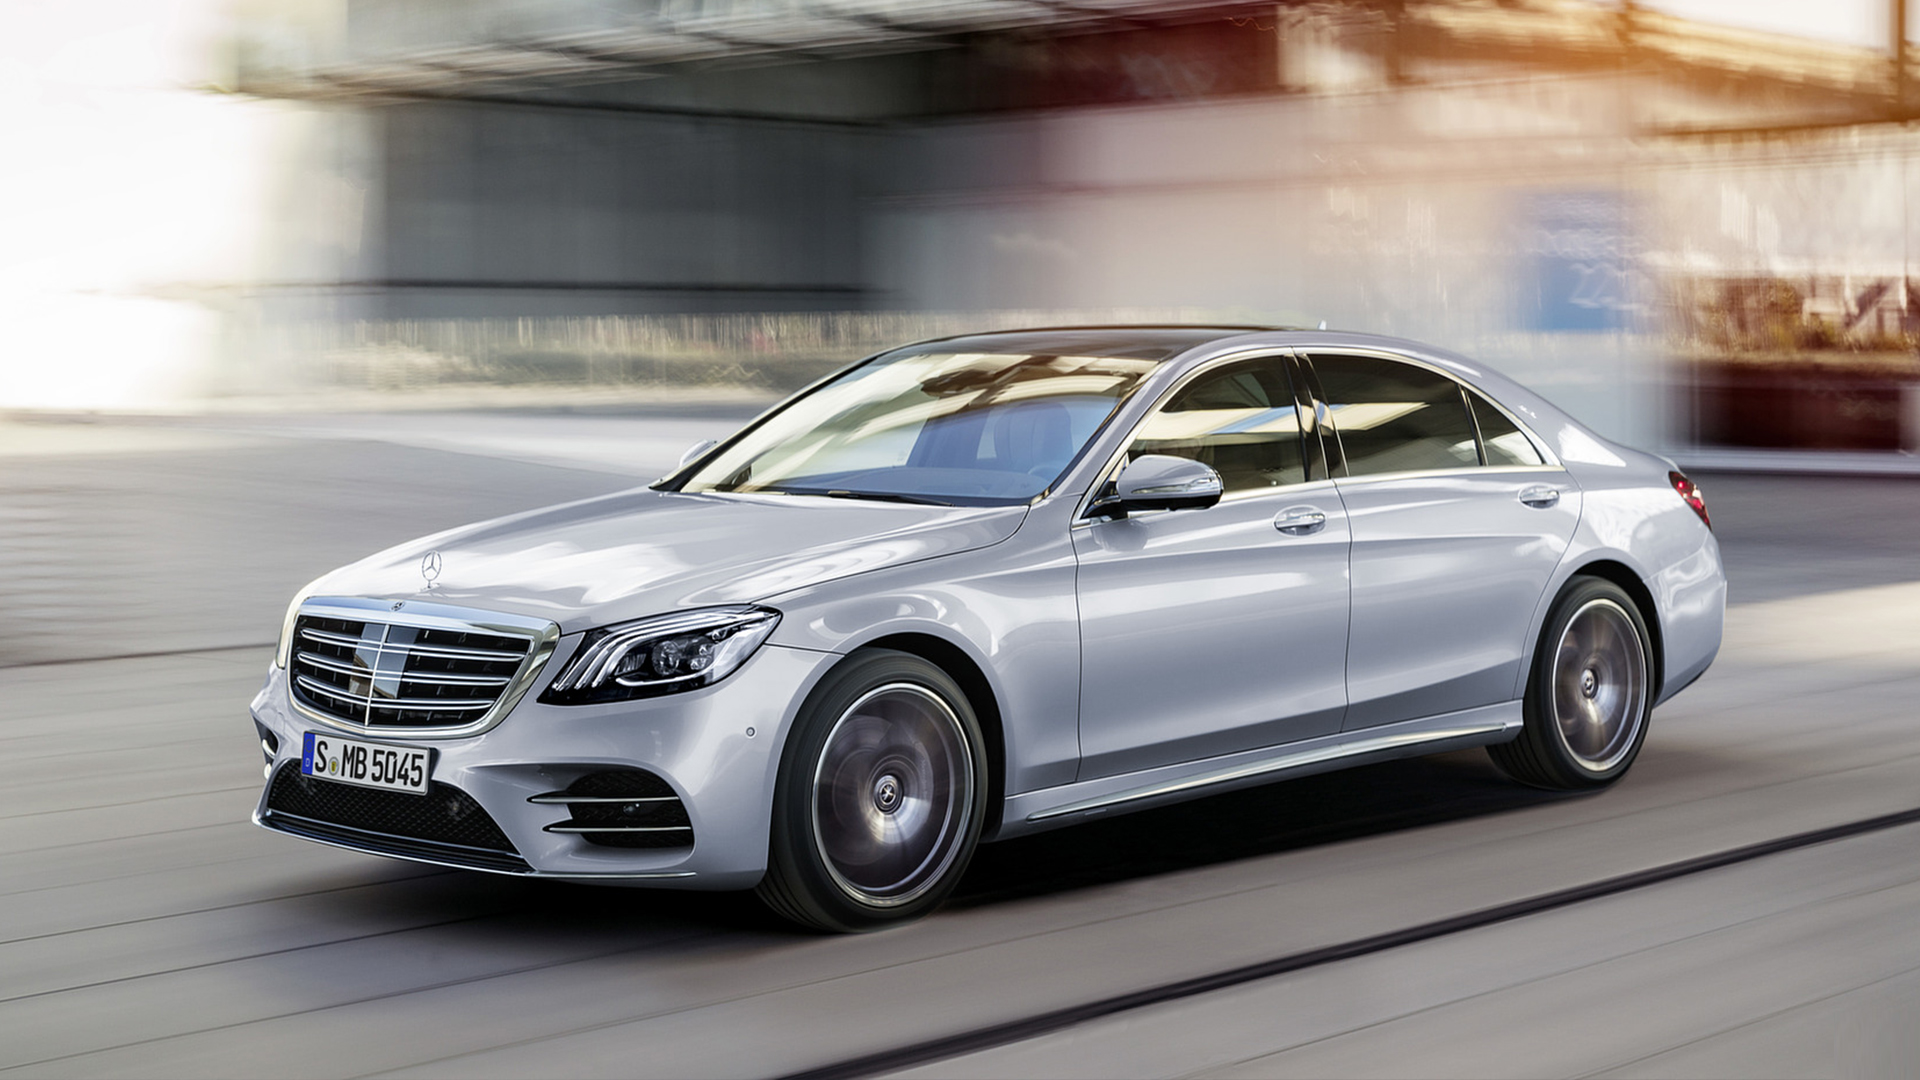 A Mercedes-Benz new company Lease car driving at speed with a distorted background